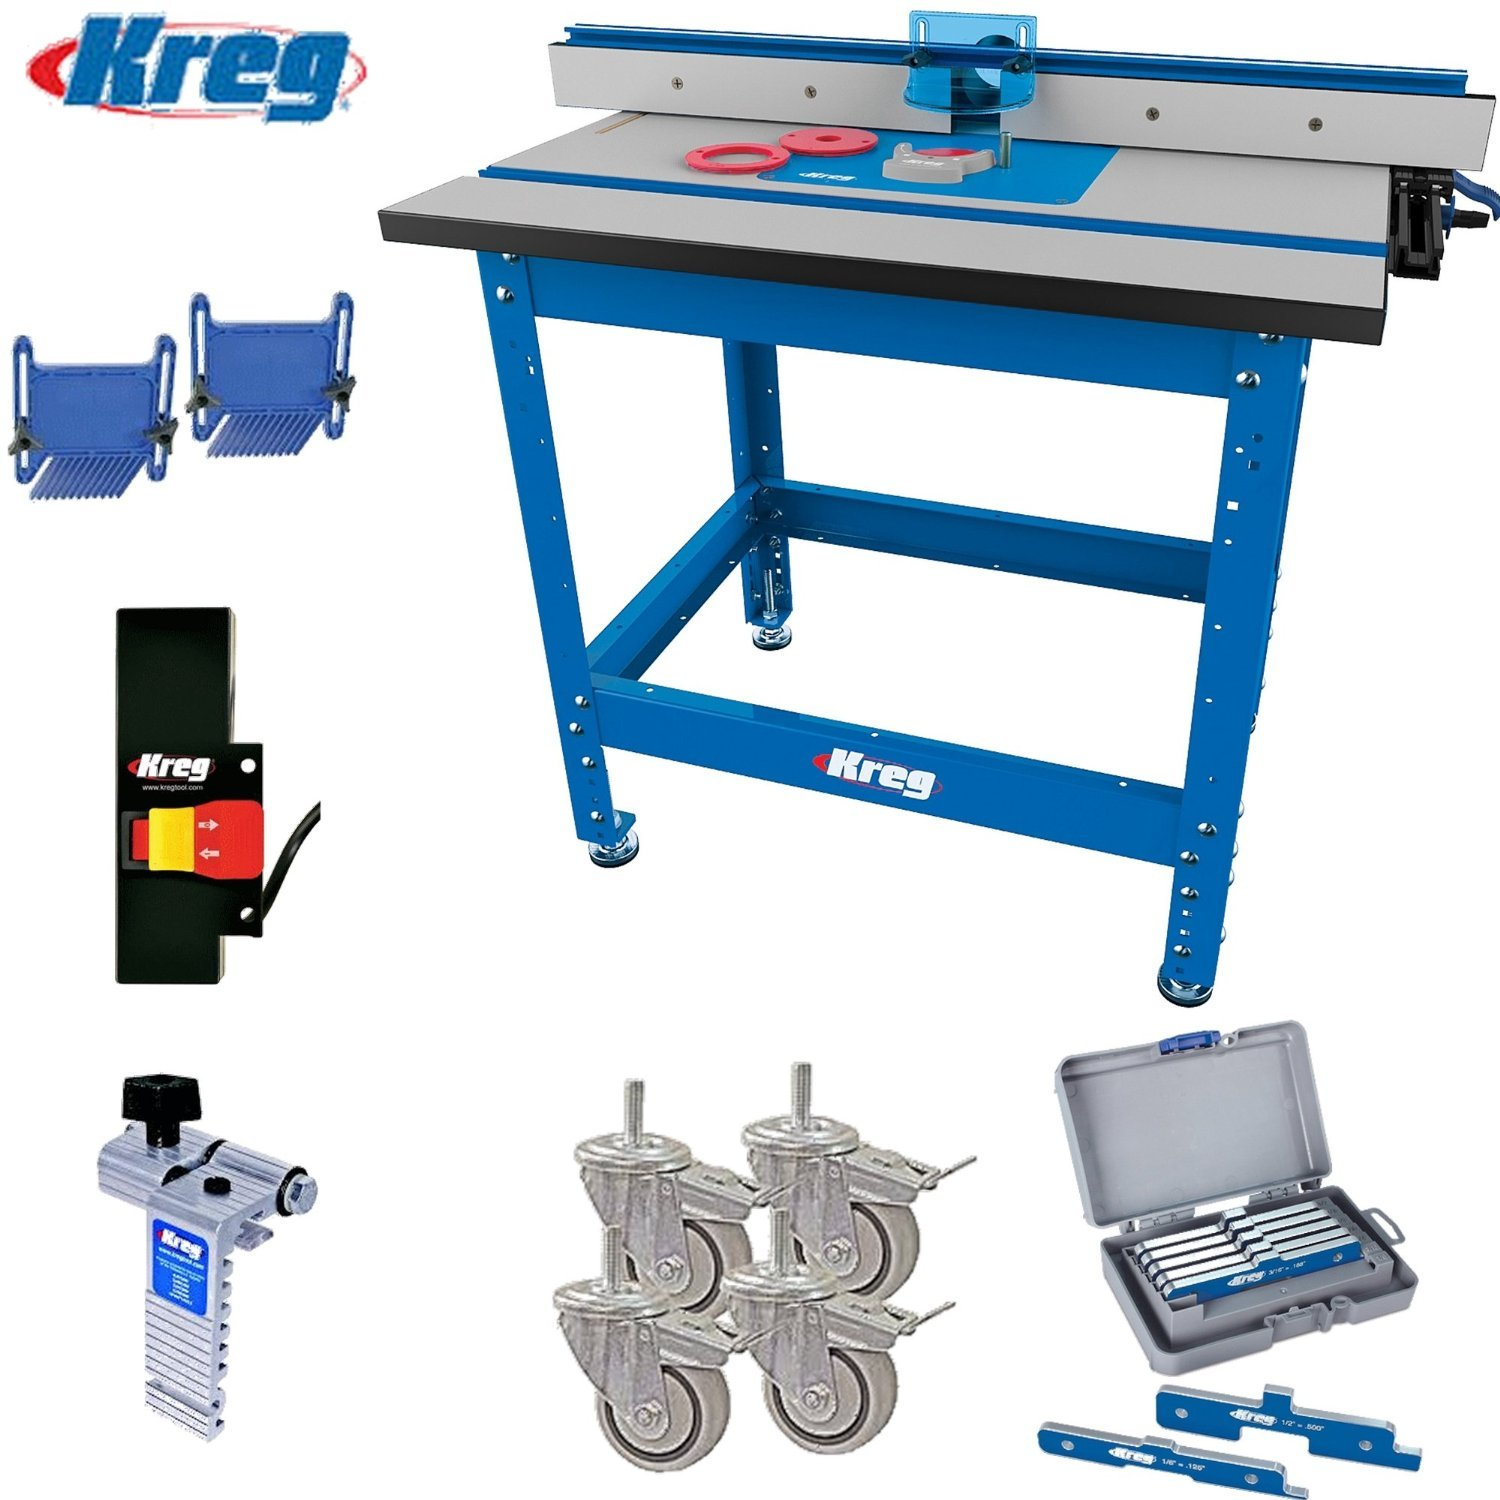 Kreg prs1045 krs1035 prs1025 prs1015 router table set amazon greentooth